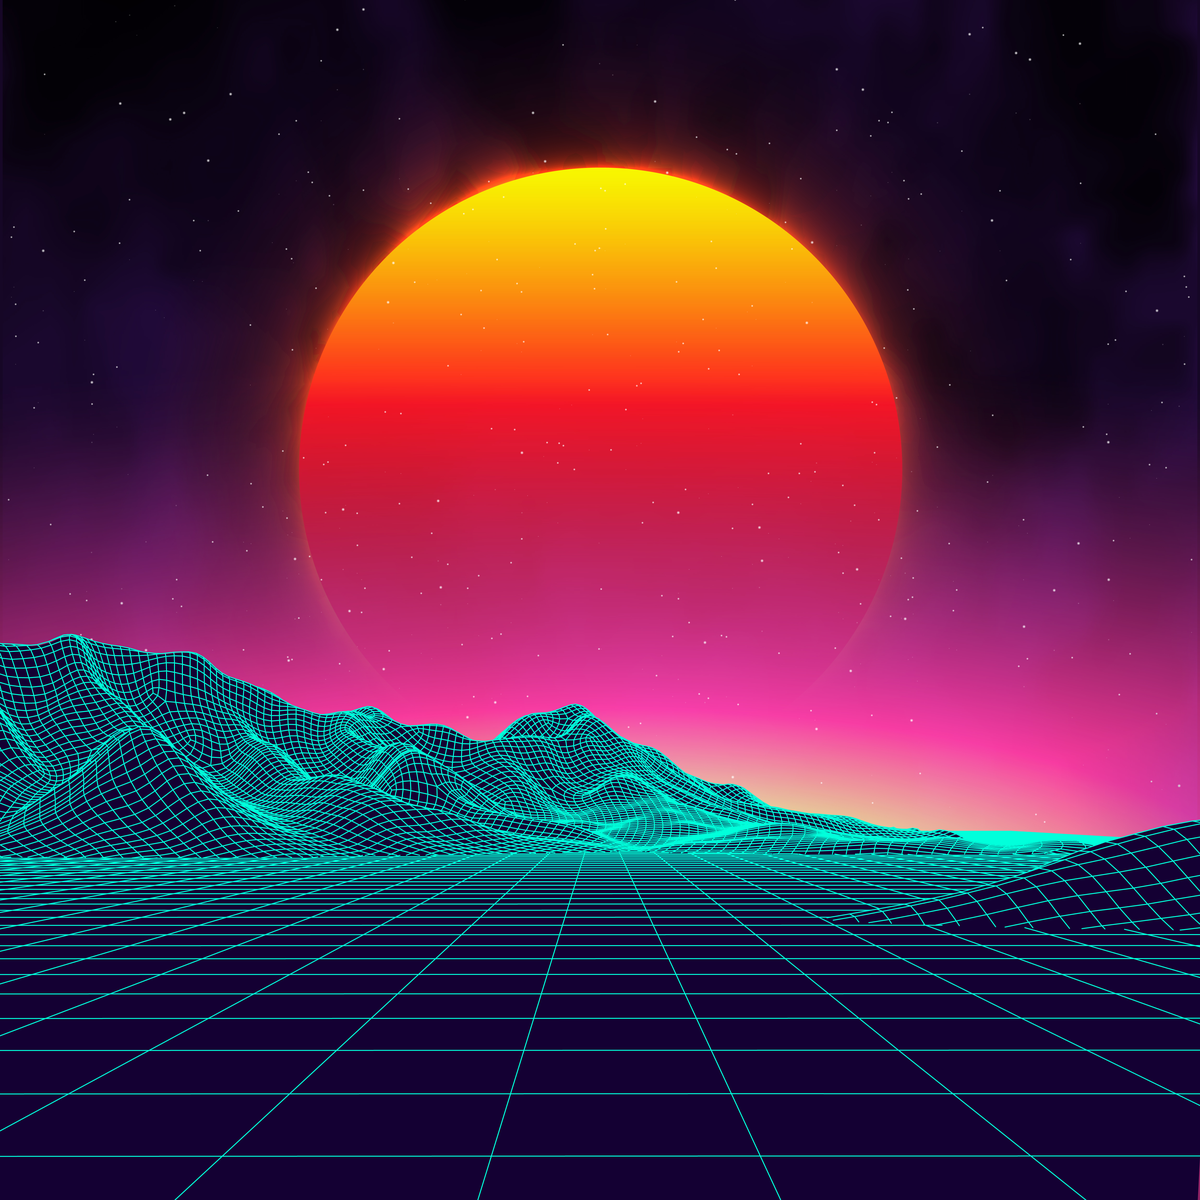 A gradient sun sets over a neon grid field.